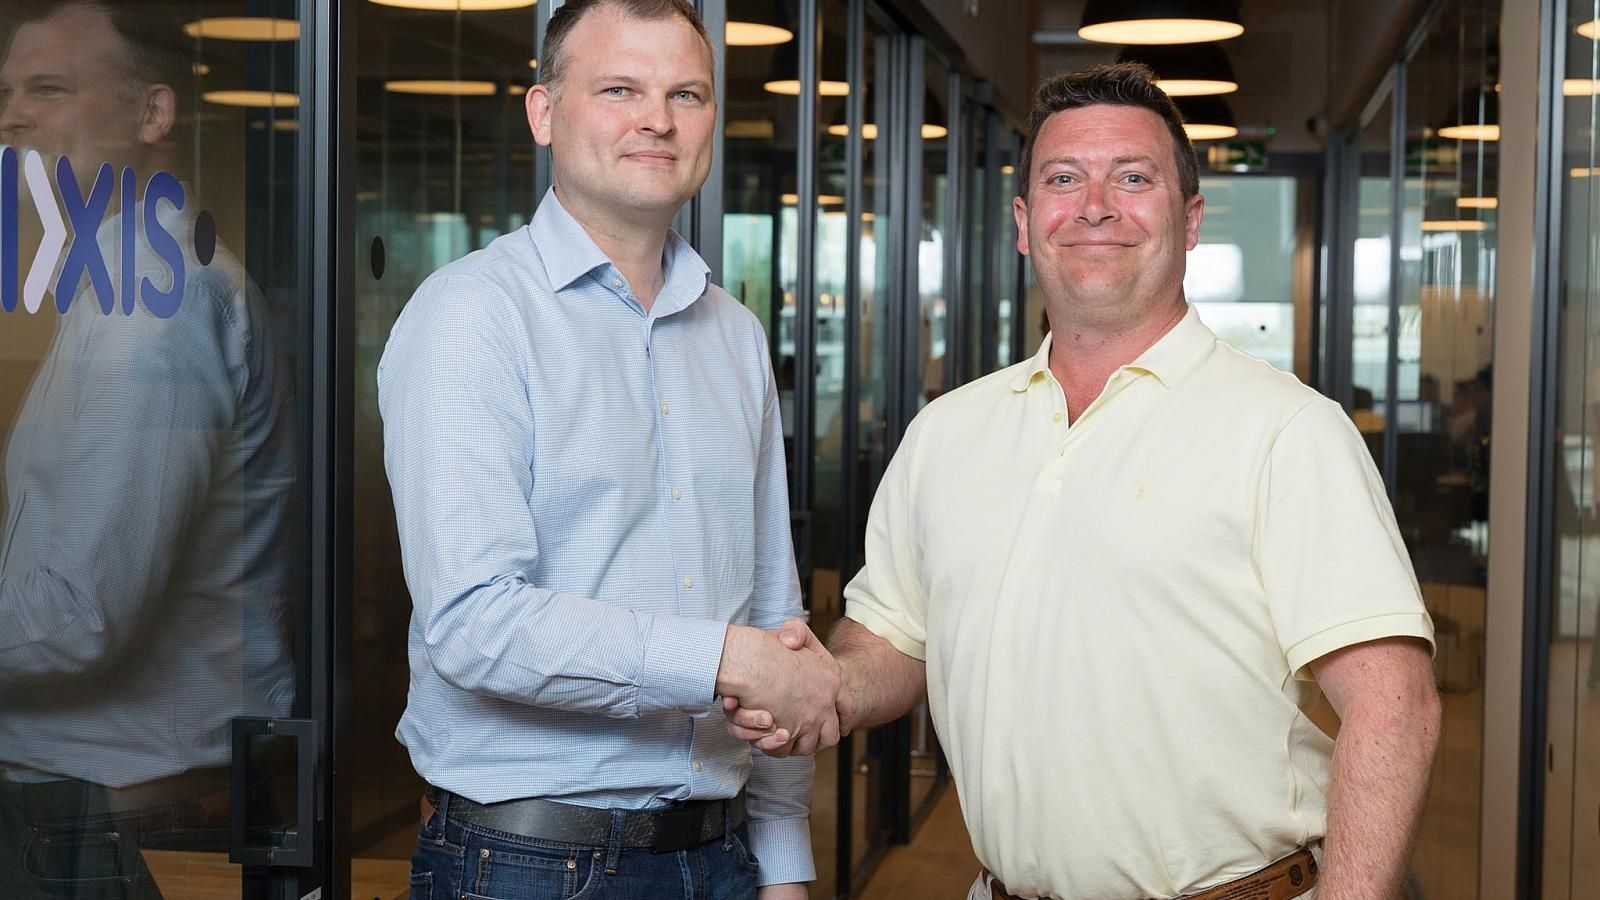 Ixis and Digital State Marketing celebrate first joint client win